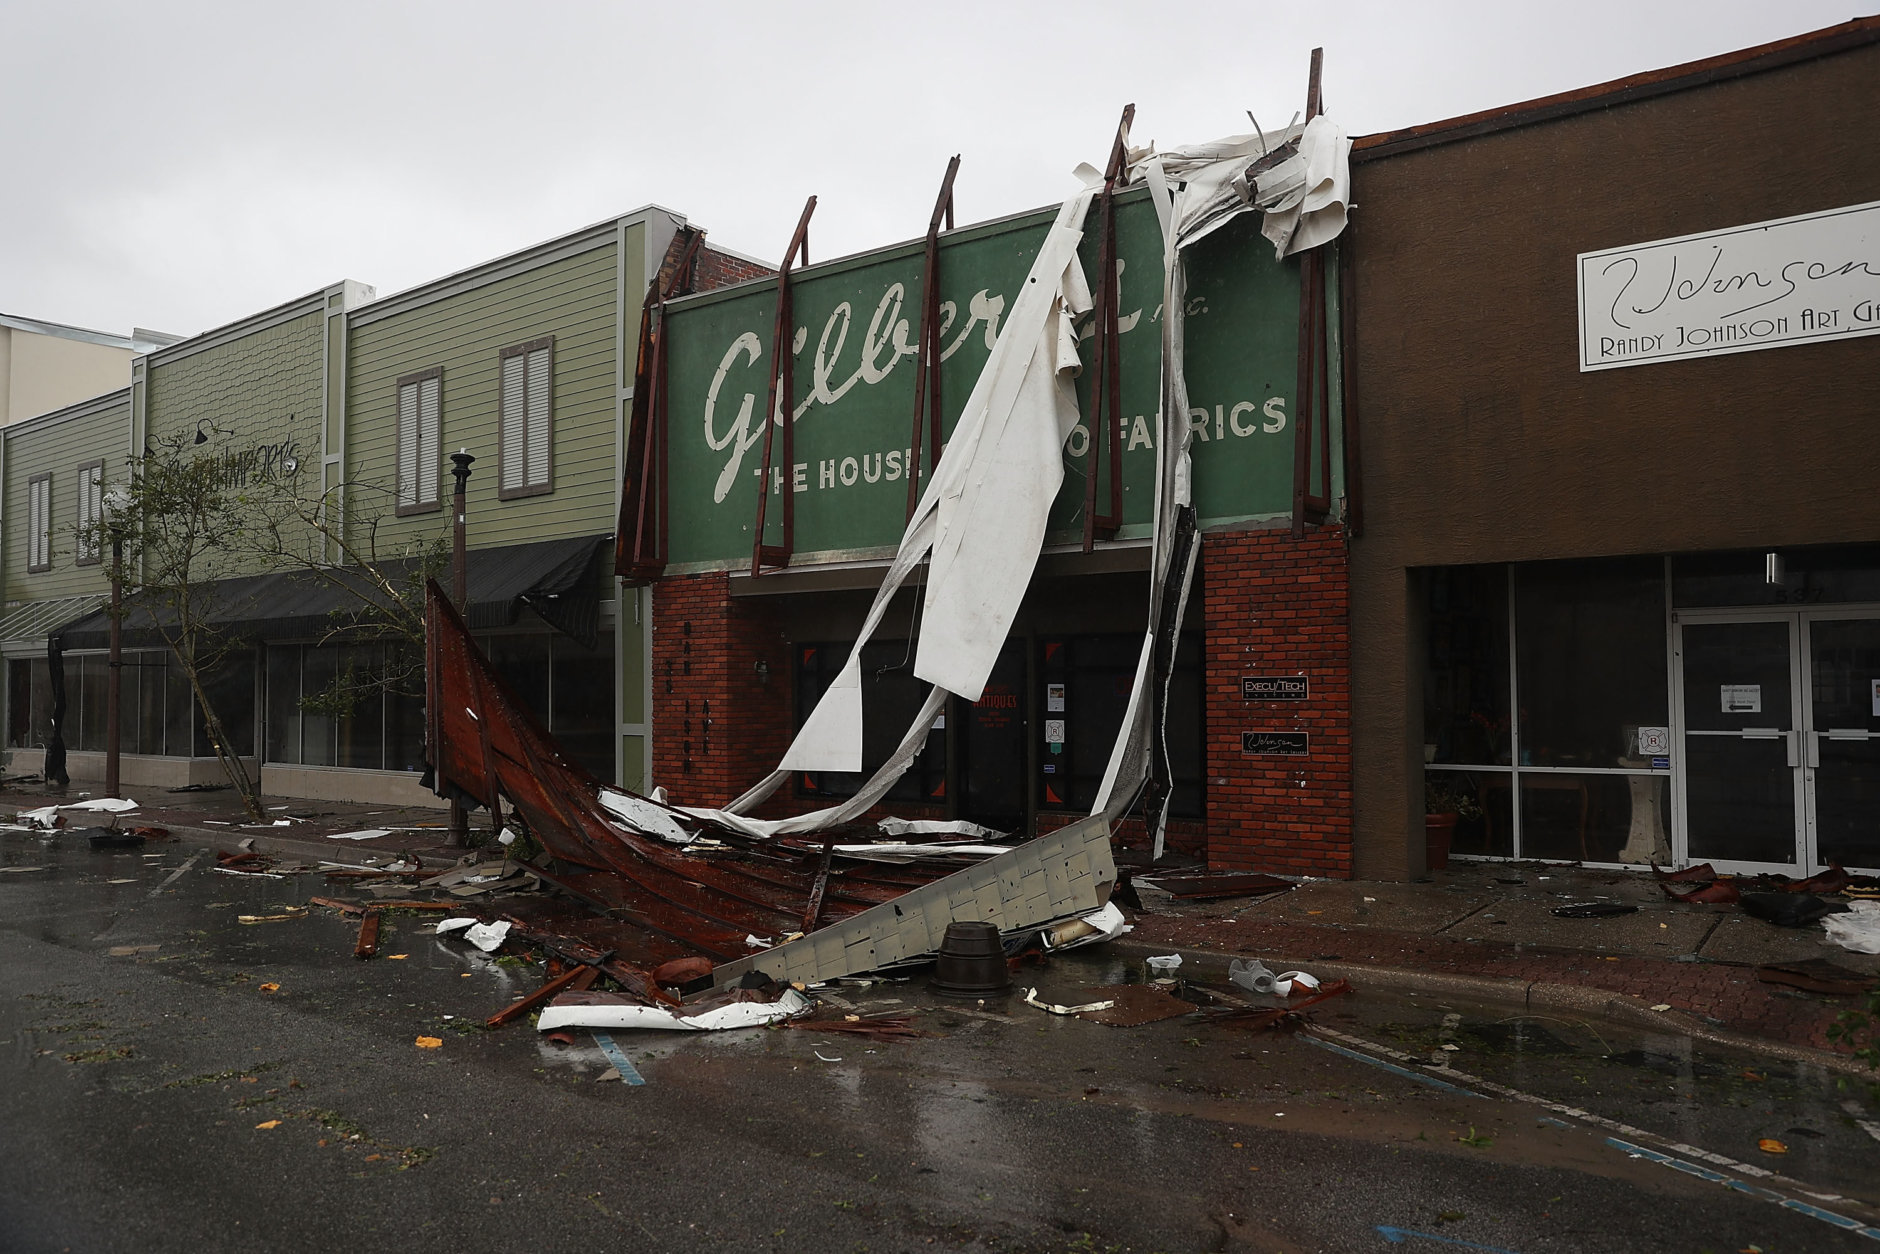 PANAMA CITY, FL - OCTOBER 10:  Broken awnings are seen after hurricane Michael passed through the downtown area on October 10, 2018 in Panama City, Florida. The hurricane hit the Florida Panhandle as a category 4 storm.  (Photo by Joe Raedle/Getty Images)